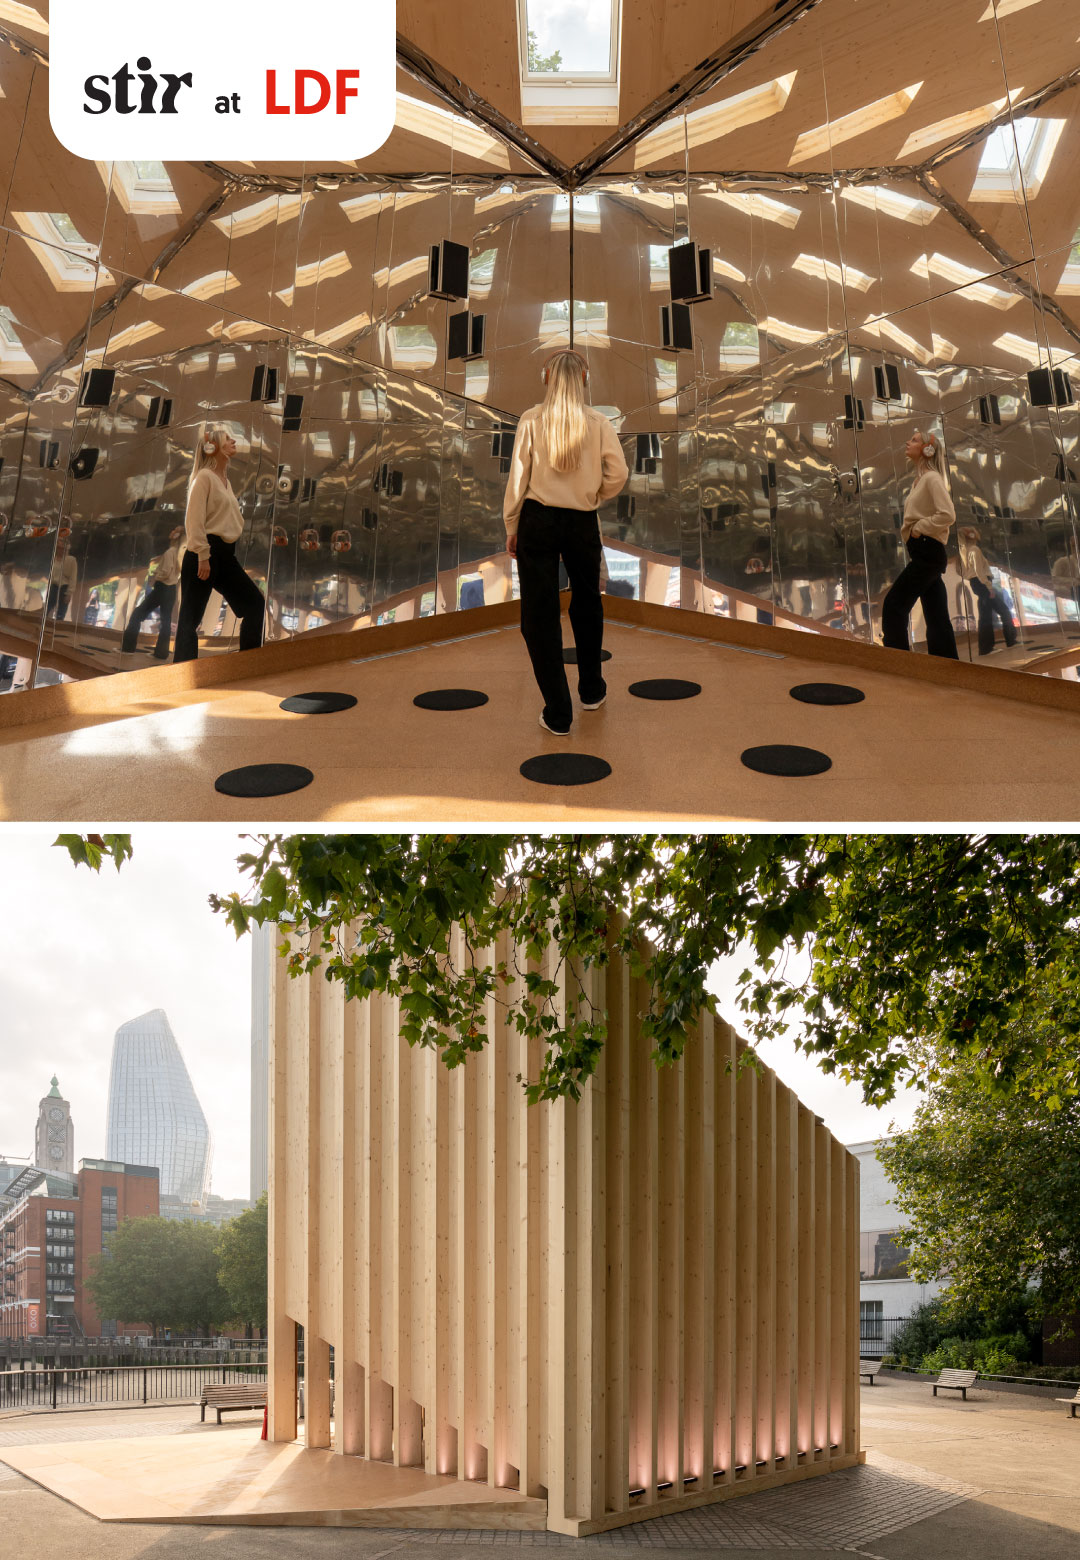 The Cube by Henning Larsen and VELUX   The Cube Installation at London Design Festival 2021   STIRworld